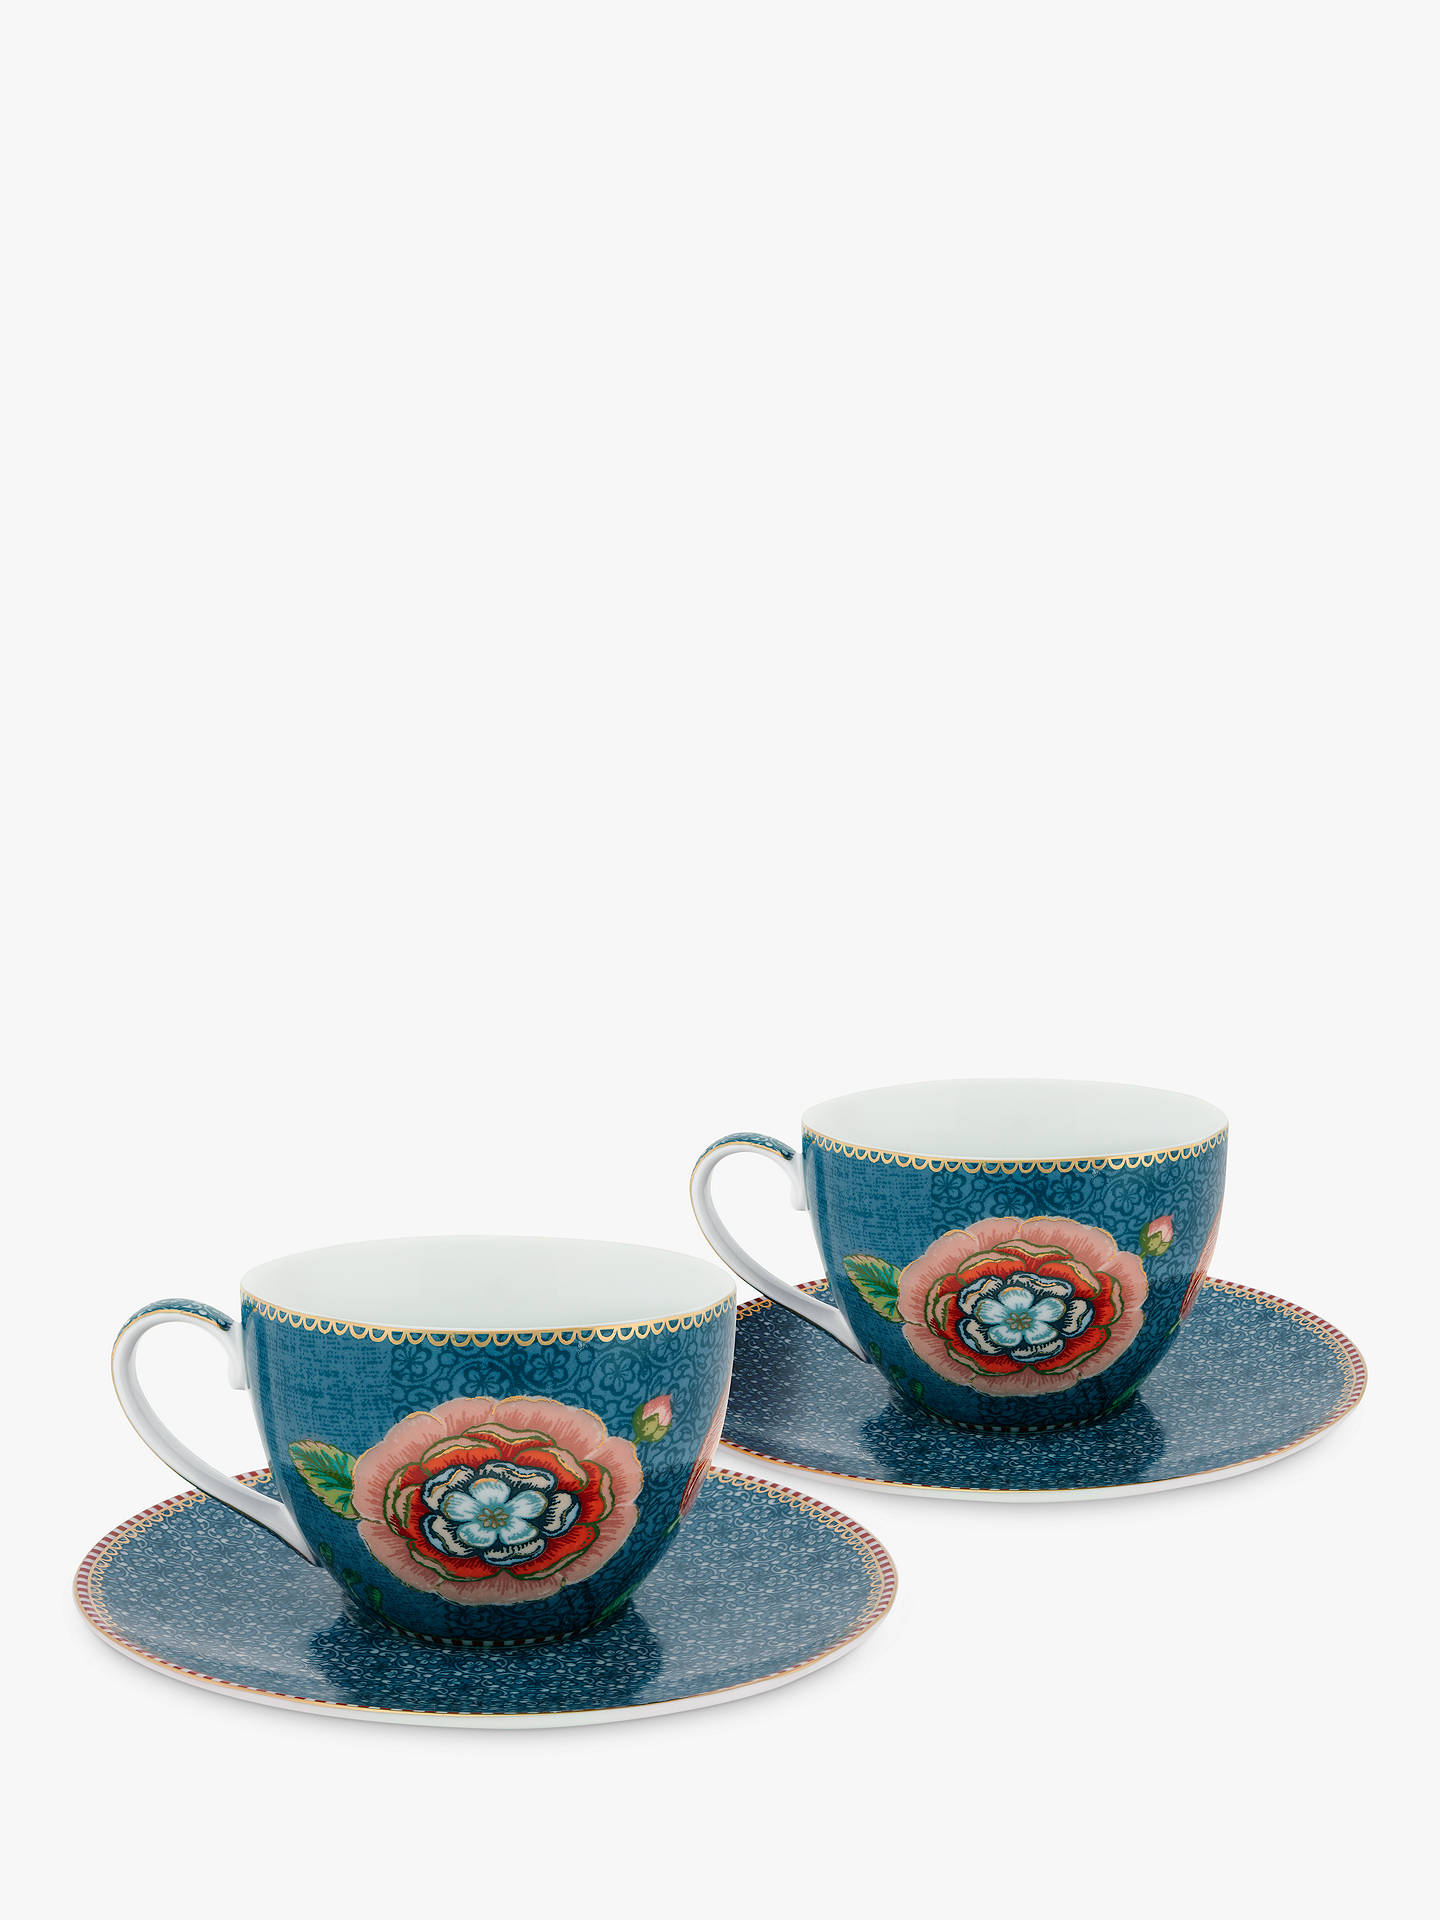 BuyPiP Studio Spring To Life Cup & Saucer, Set of 2, Blue Online at johnlewis.com